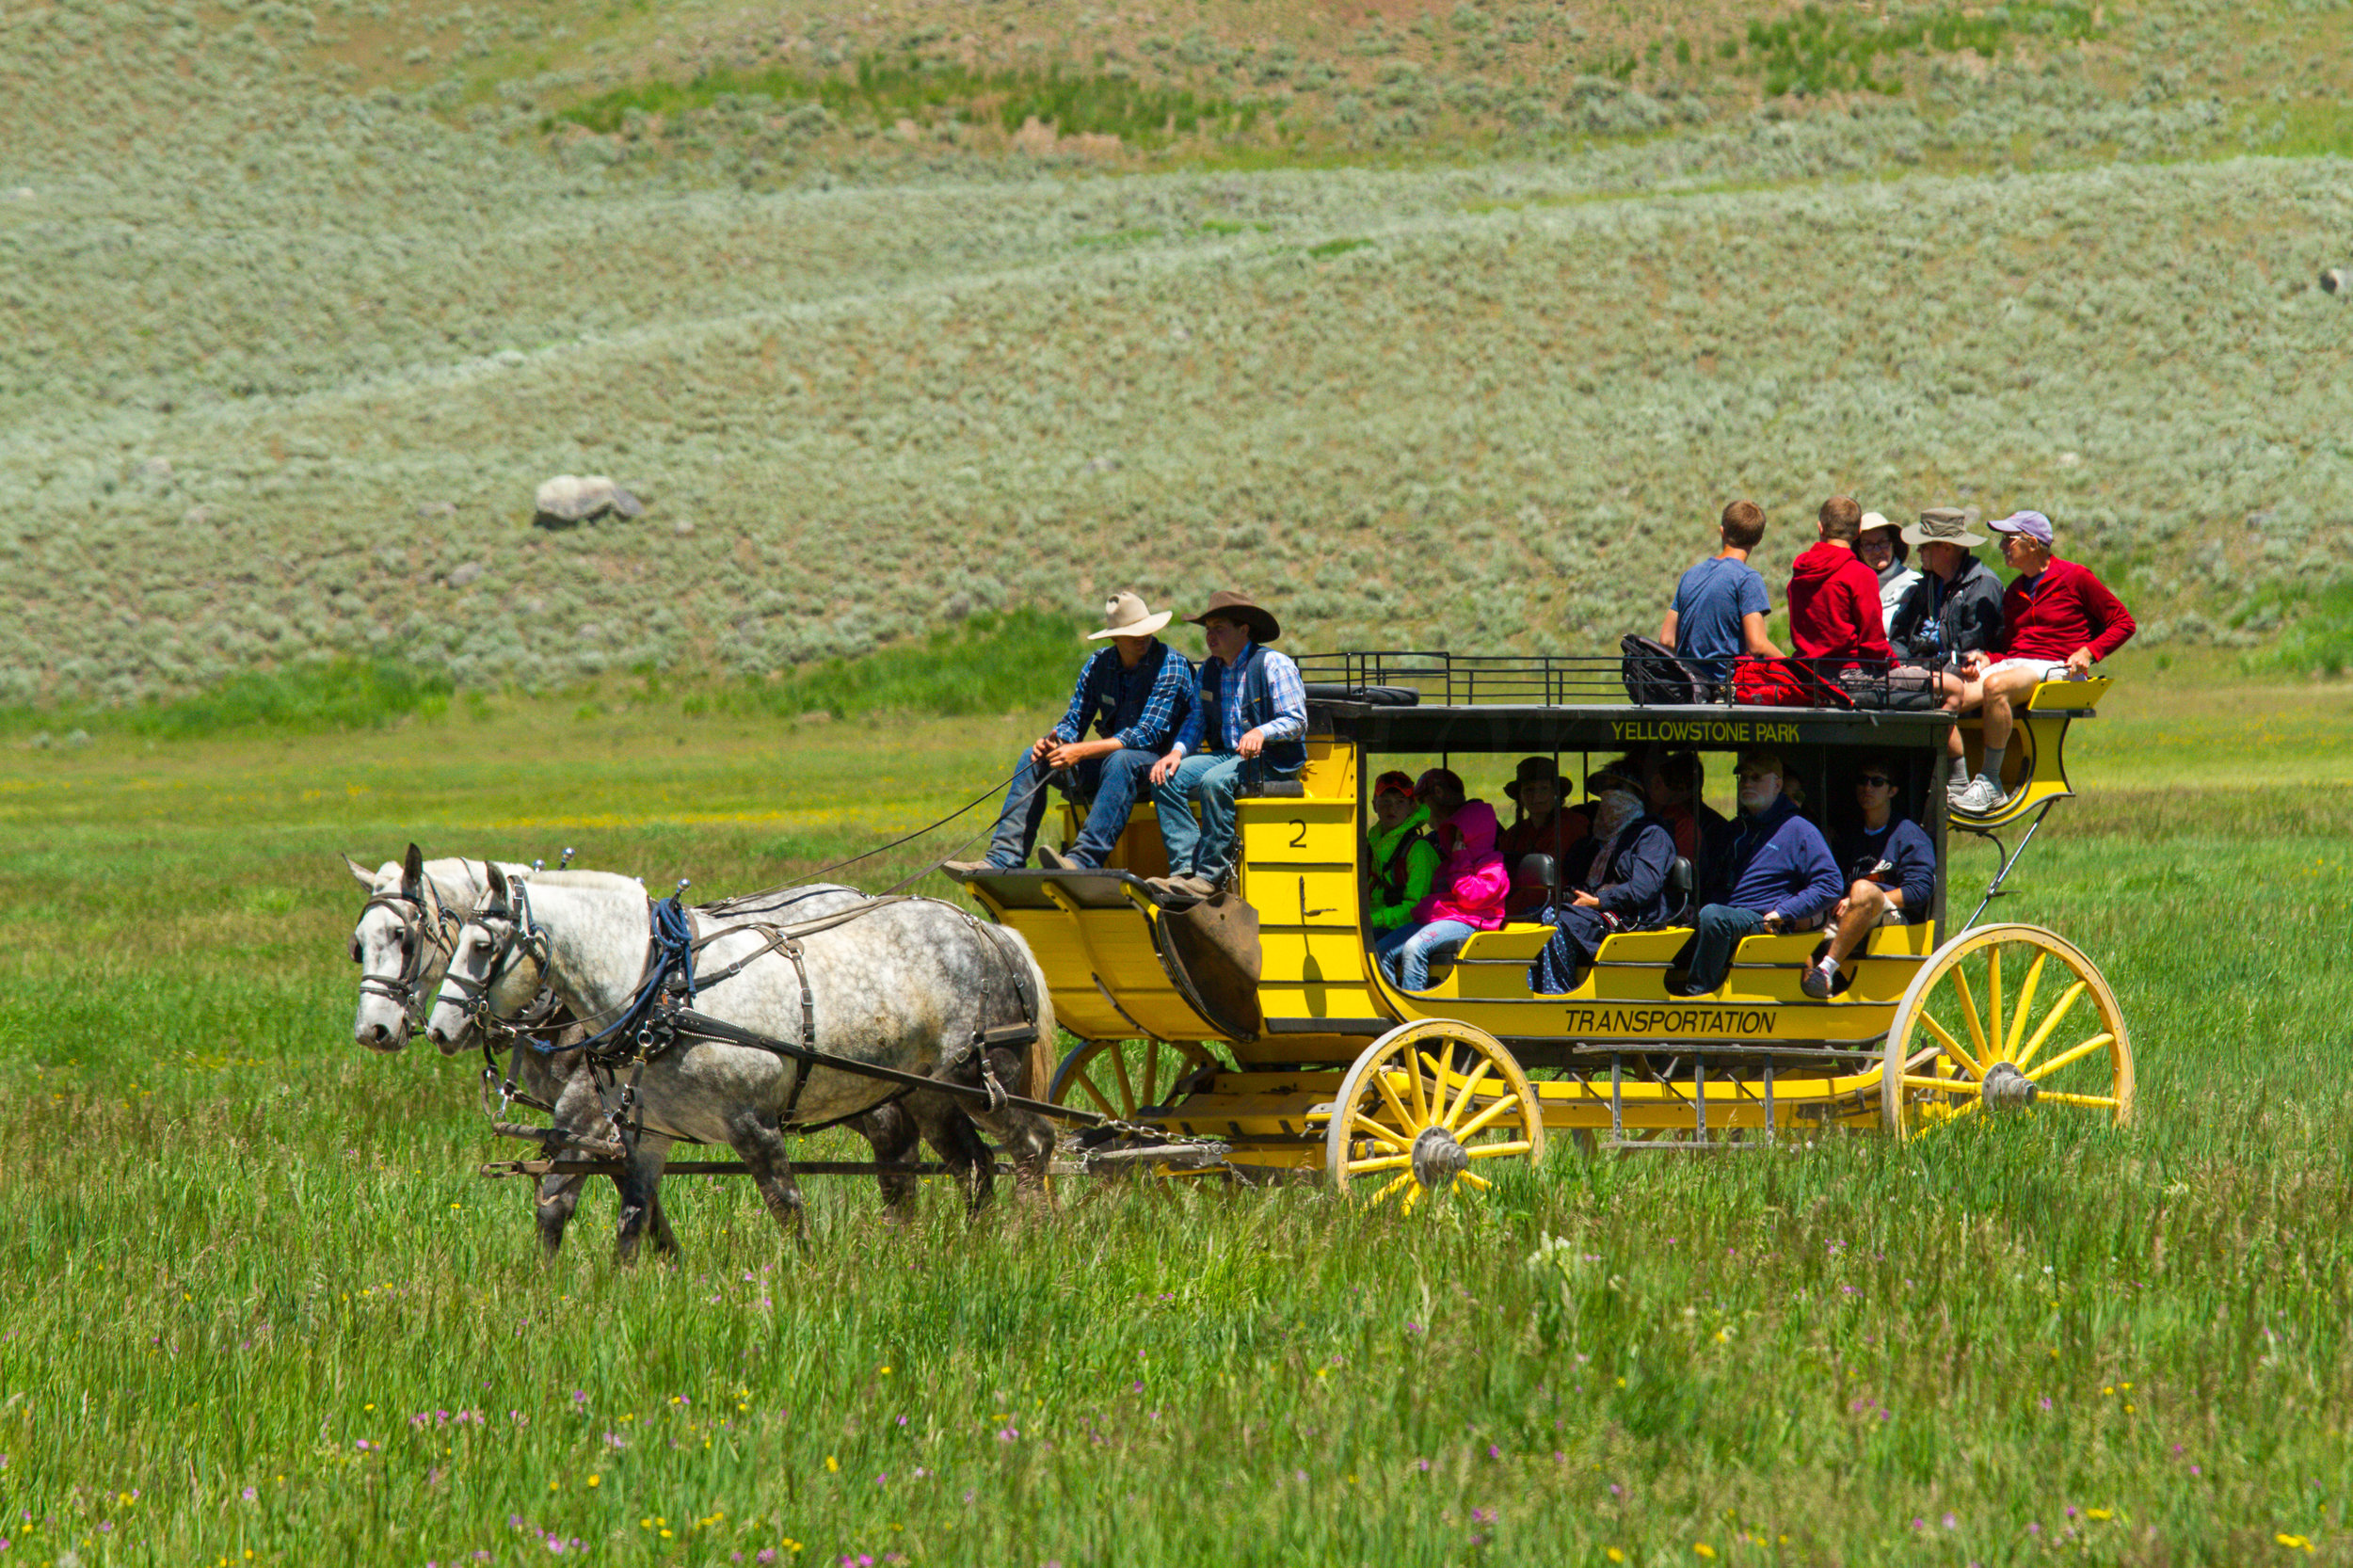 Lamar Valley, Yellowstone National Park, Image # 5095